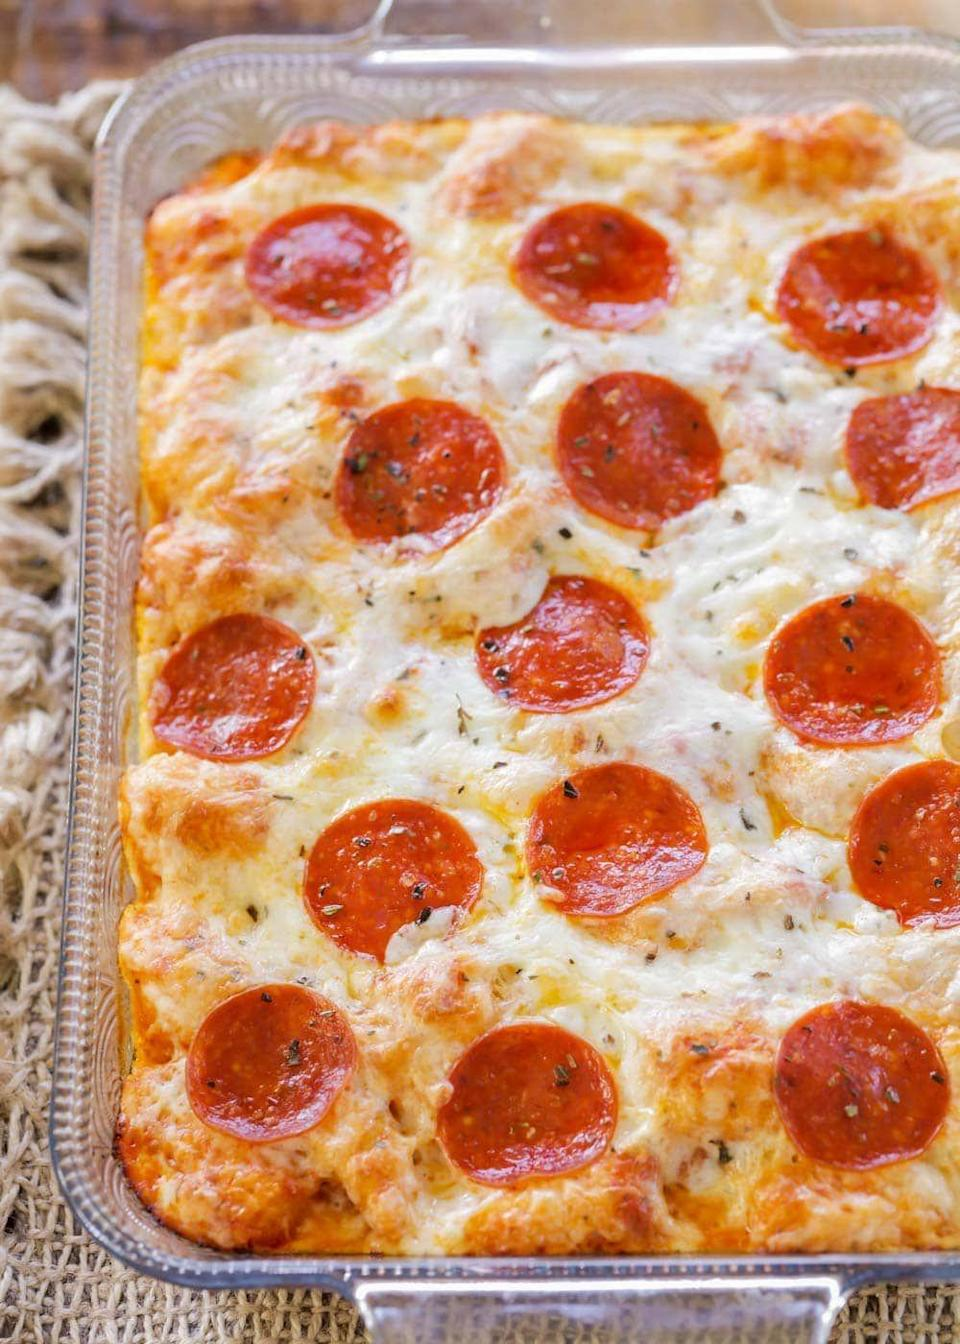 """<p>Turns out pizza <em>can</em> get better. Pre-made biscuit dough is the foundation of this supremely cheesy dish. You won't even question taking extra helpings.</p><p><strong>Get the recipe at <a href=""""https://lilluna.com/pizza-casserole/"""" rel=""""nofollow noopener"""" target=""""_blank"""" data-ylk=""""slk:Lil' Luna"""" class=""""link rapid-noclick-resp"""">Lil' Luna</a>.</strong> </p>"""